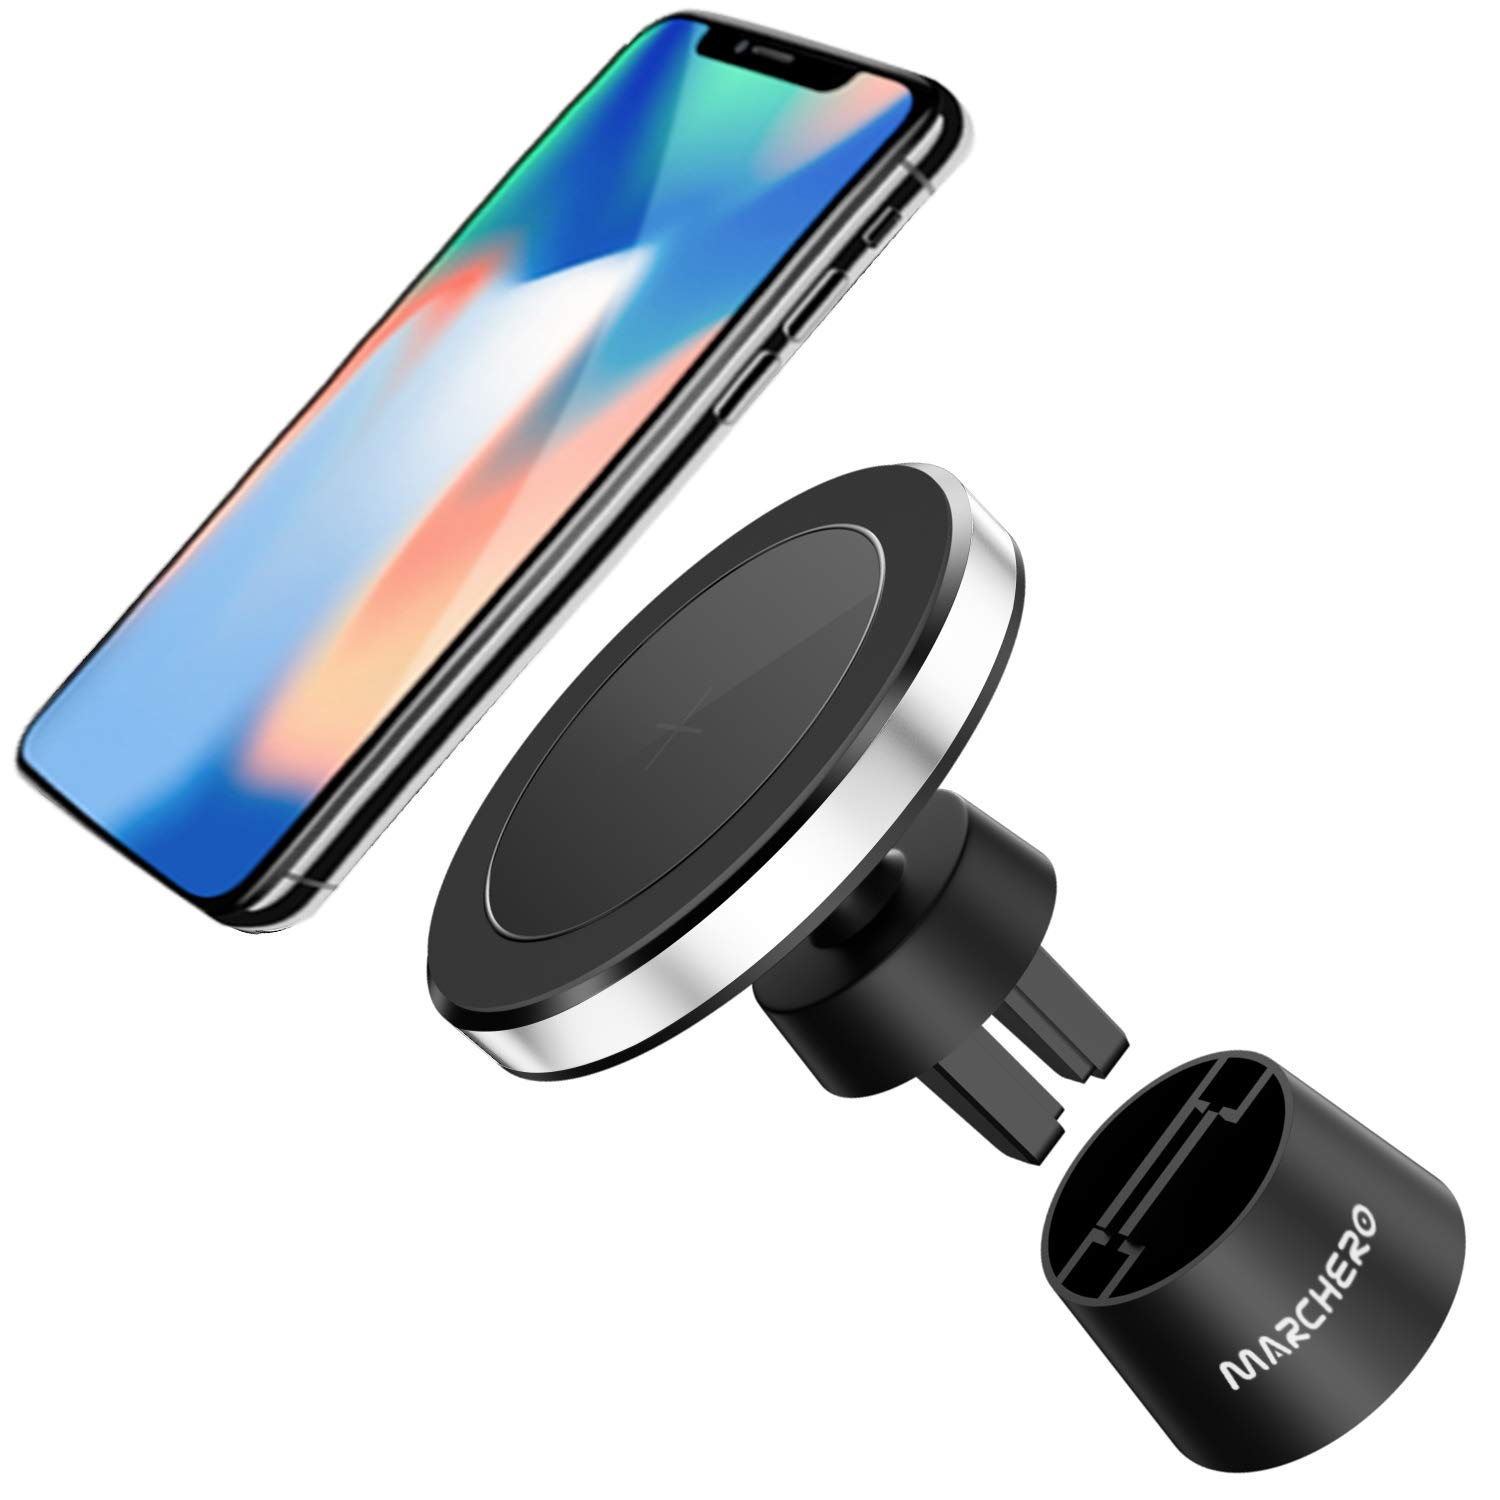 Magnetic Wireless Car Charger MARCHERO 10W Charging Car Mount Air Vent or Stand 7.5W Compatible iPhone 11//Xs//XR//X//8,10W Compatible Samsung Galaxy Note10//S10//S9//S8//S7//S6 Edge